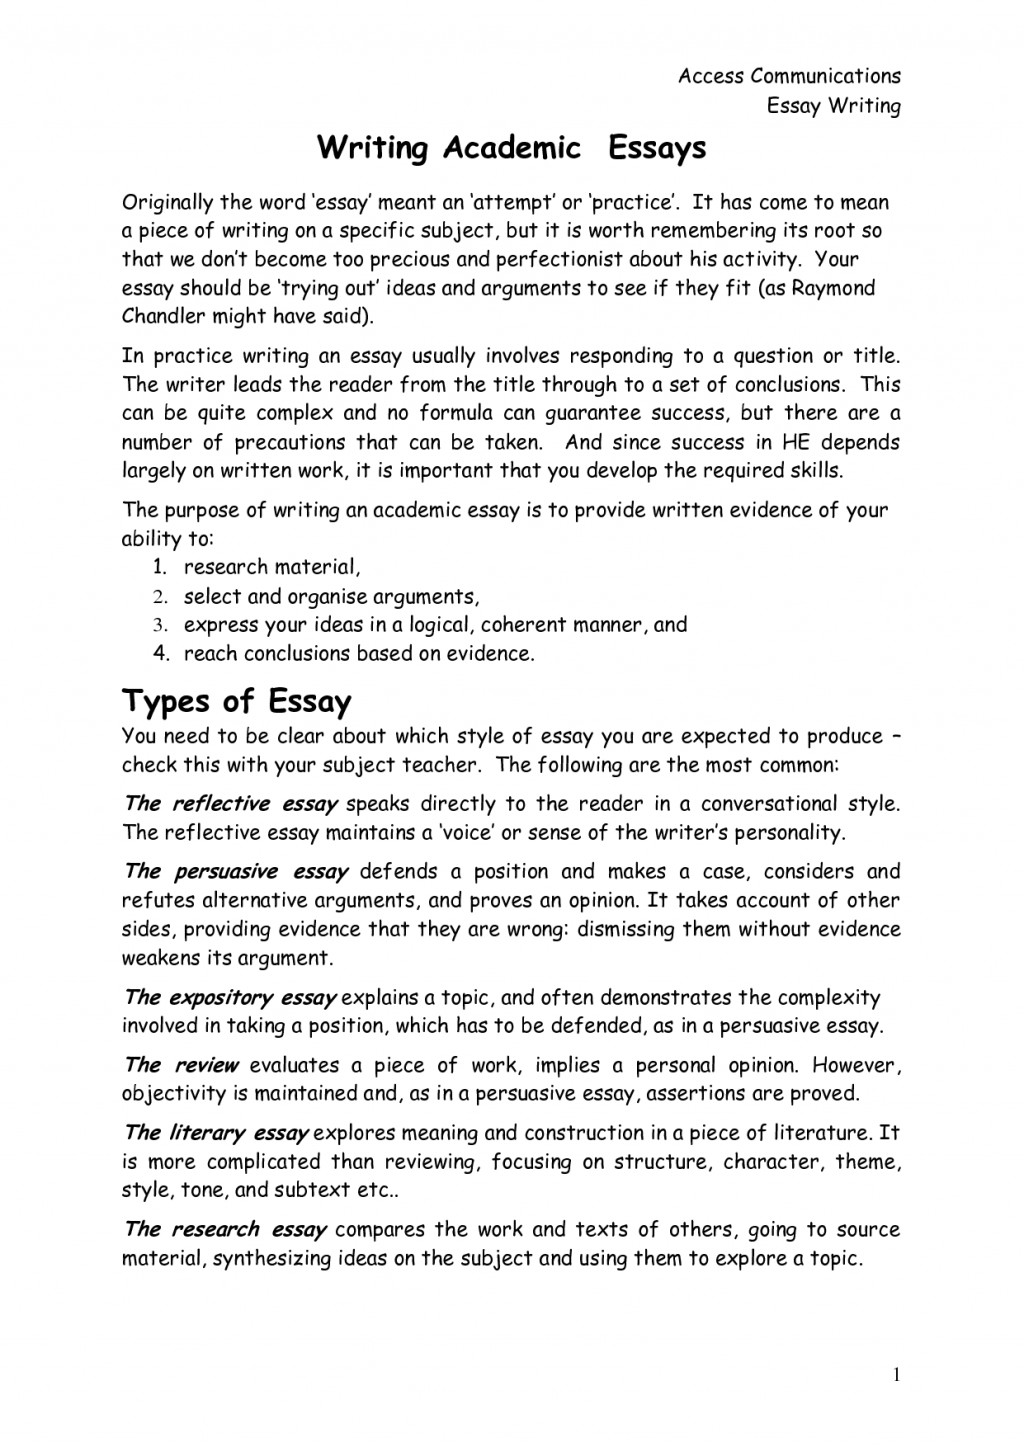 017 Essay Example Write For Me Amazing My Generator Free Online Large